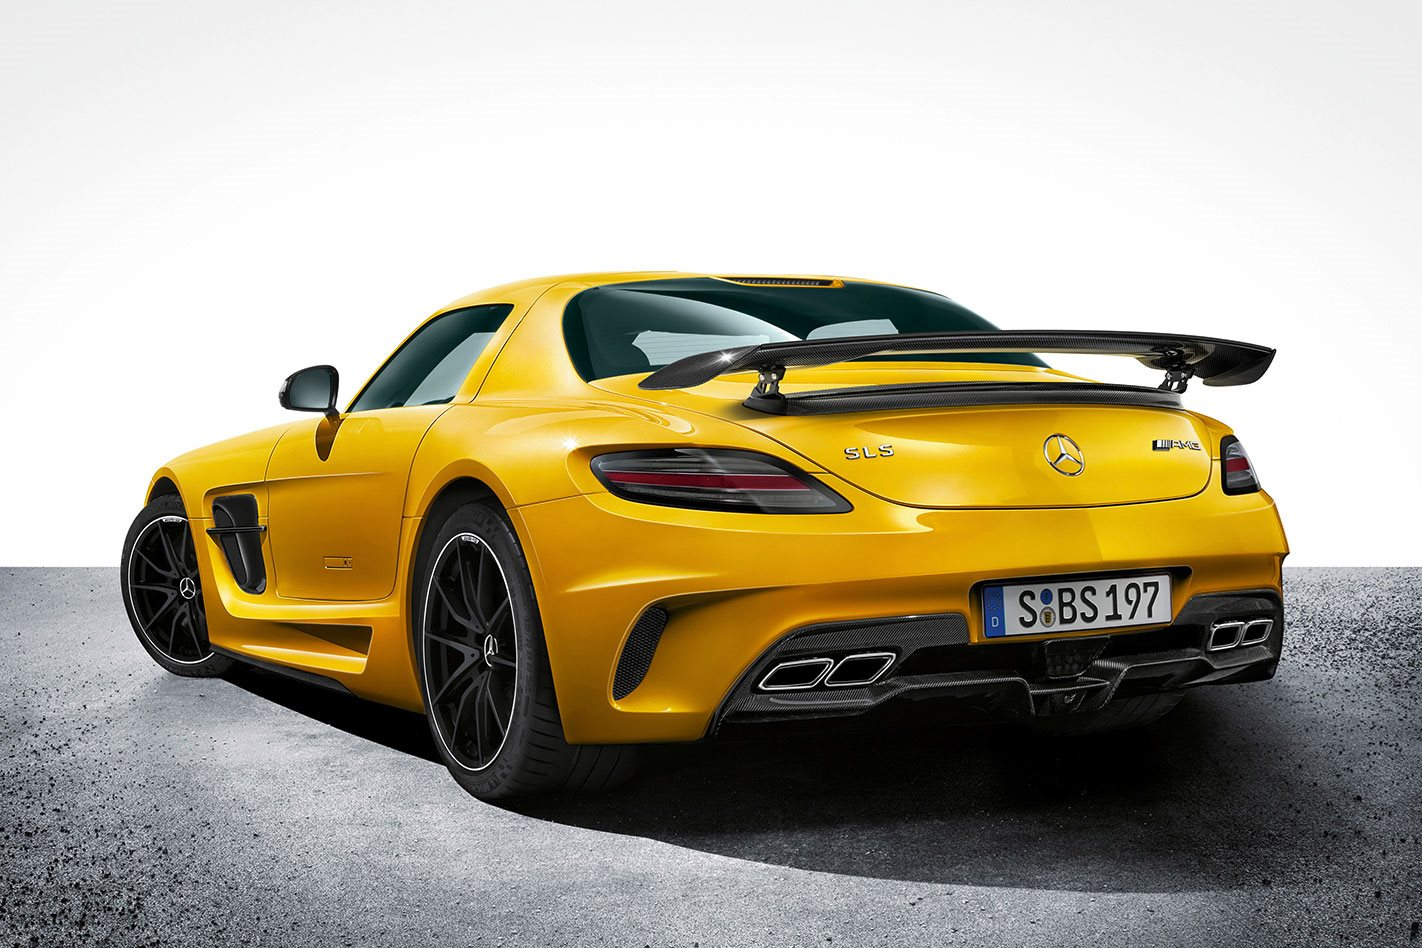 Mercedes-AMG GT 4-Door Coupe Goes Live in Geneva